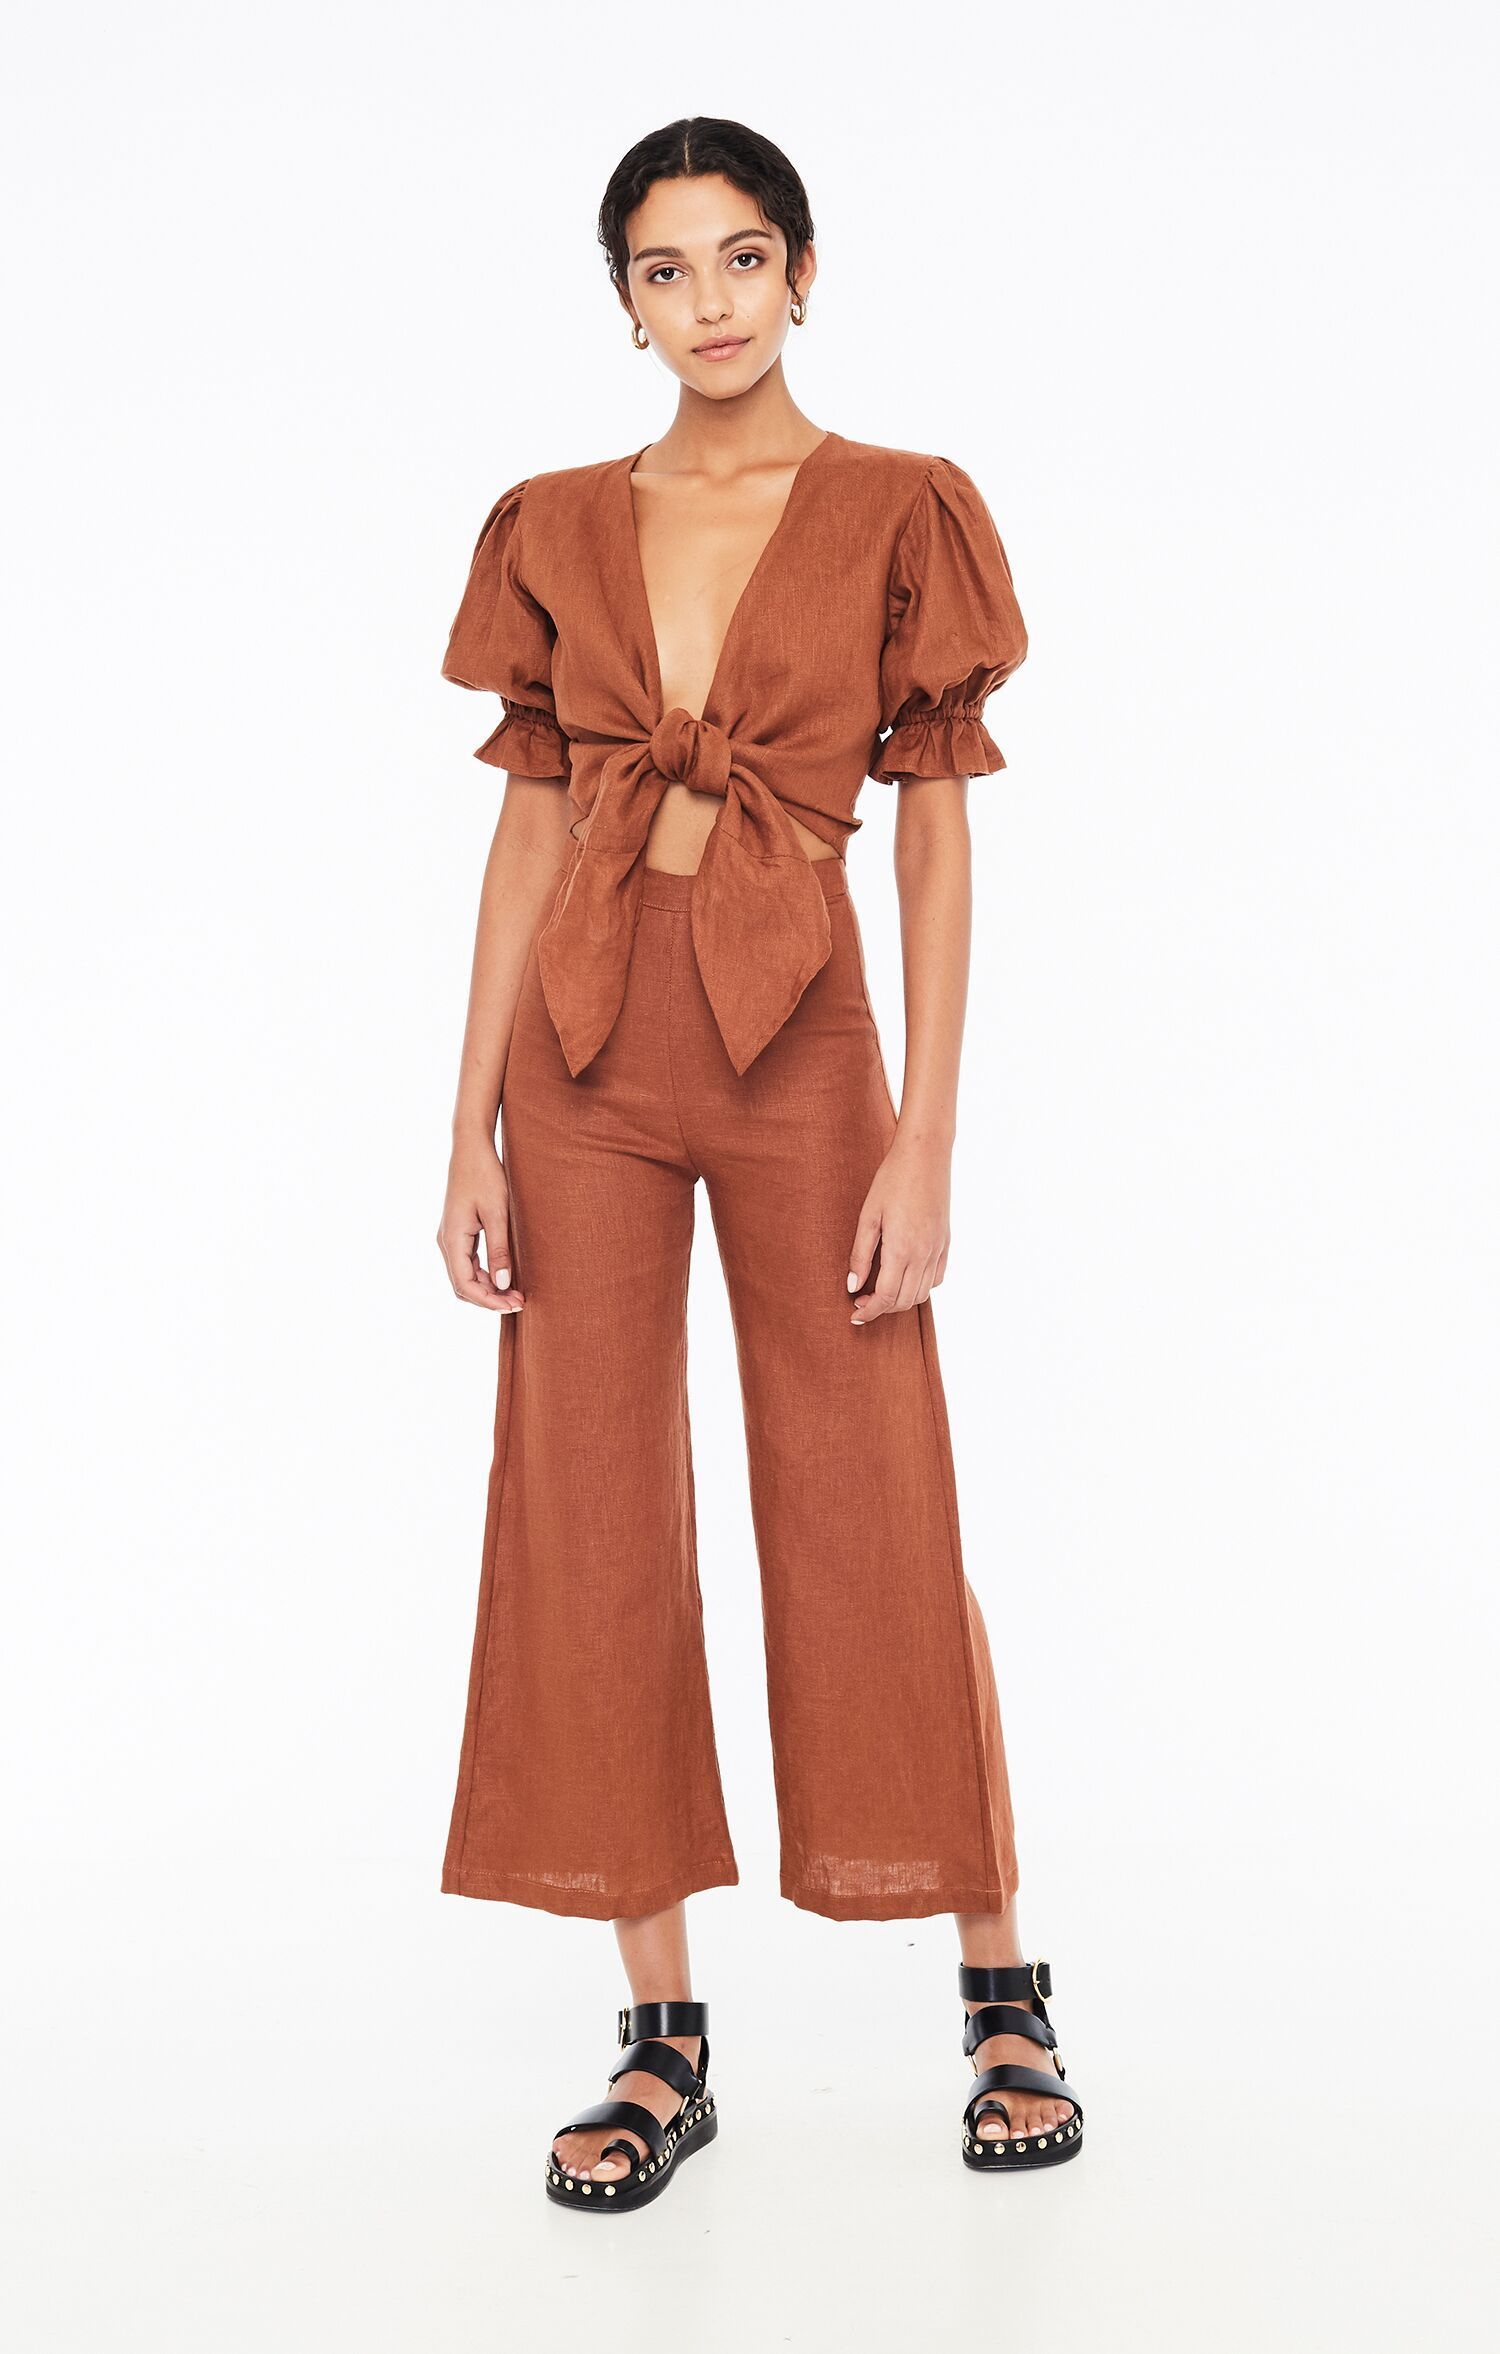 Load image into Gallery viewer, Scelsi Pant in Plain Chestnut by Faithfull The Brand | Bottoms for Women